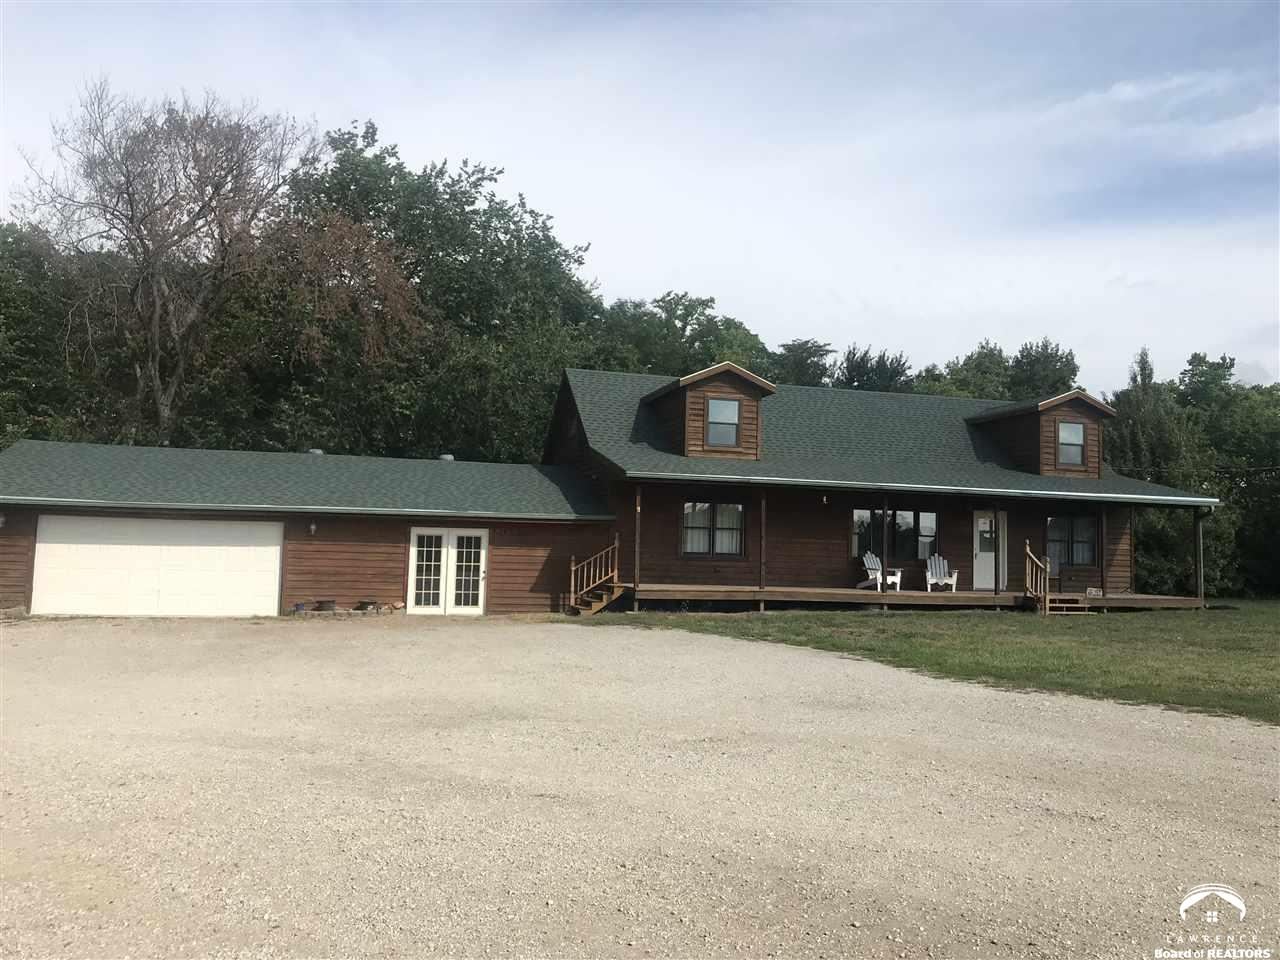 Horse Properties In Lawrence Kansas Area With 5 Acres Or More